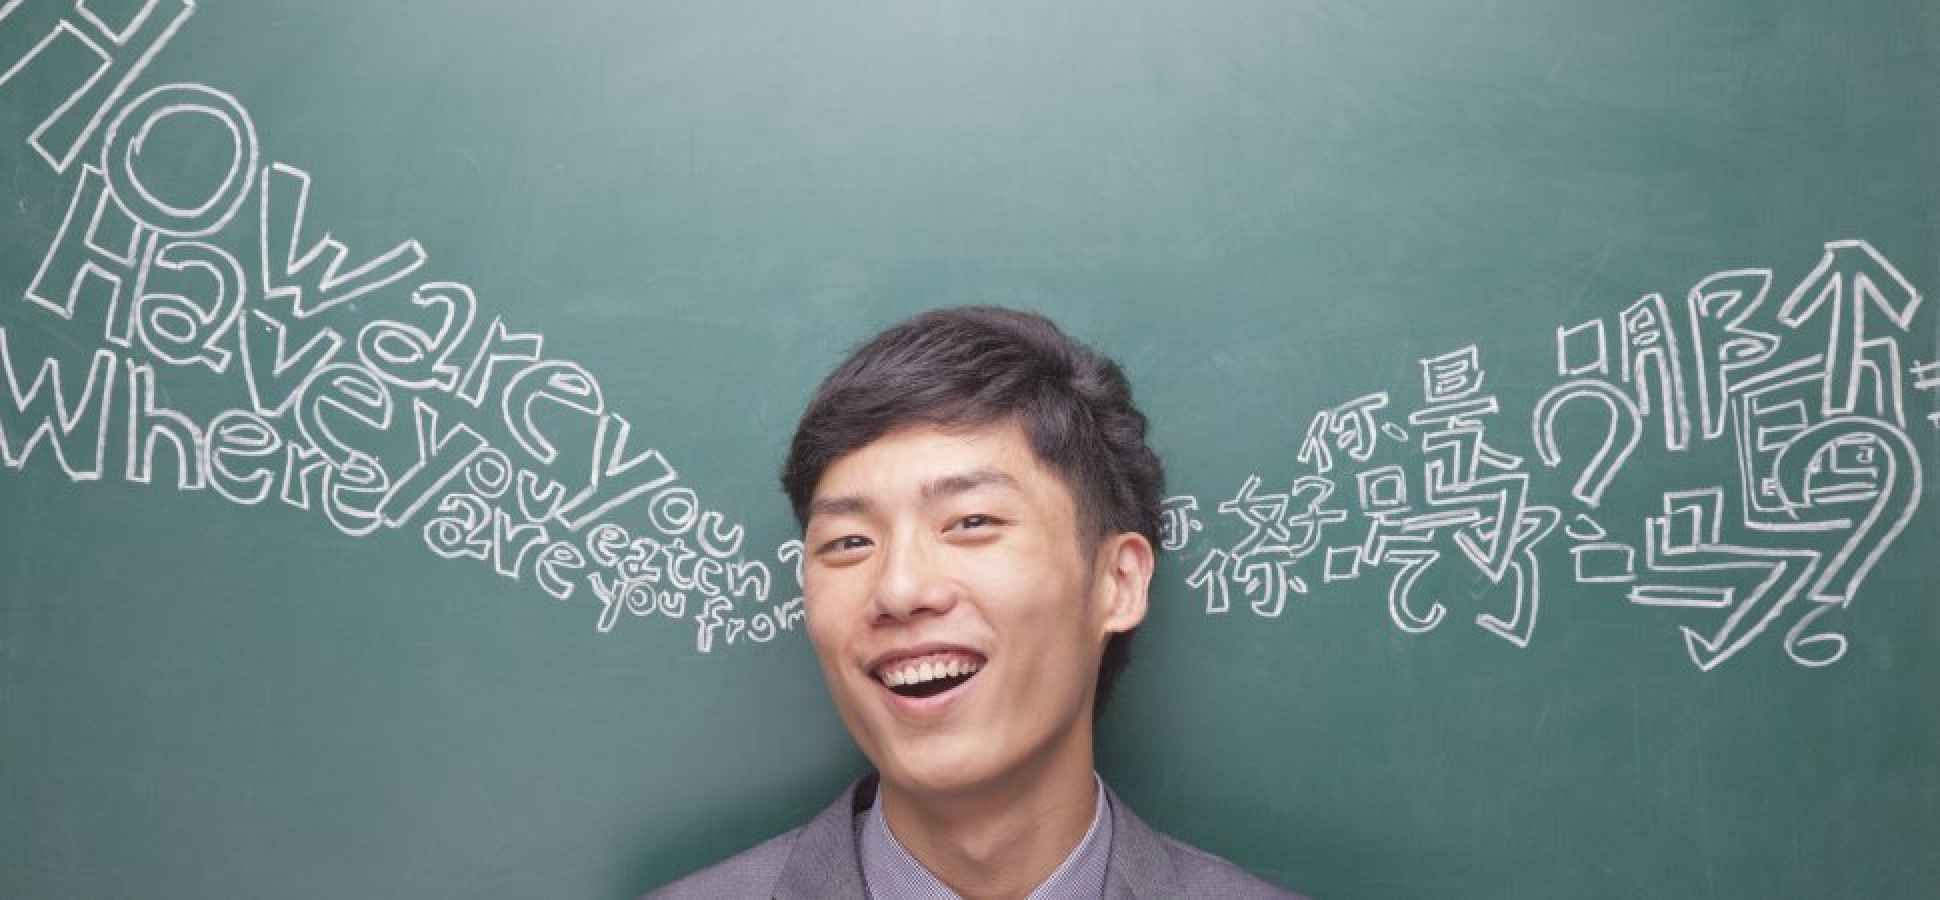 Why You Should Hire Bilinguals Even If You Don't Need Their Language Skills